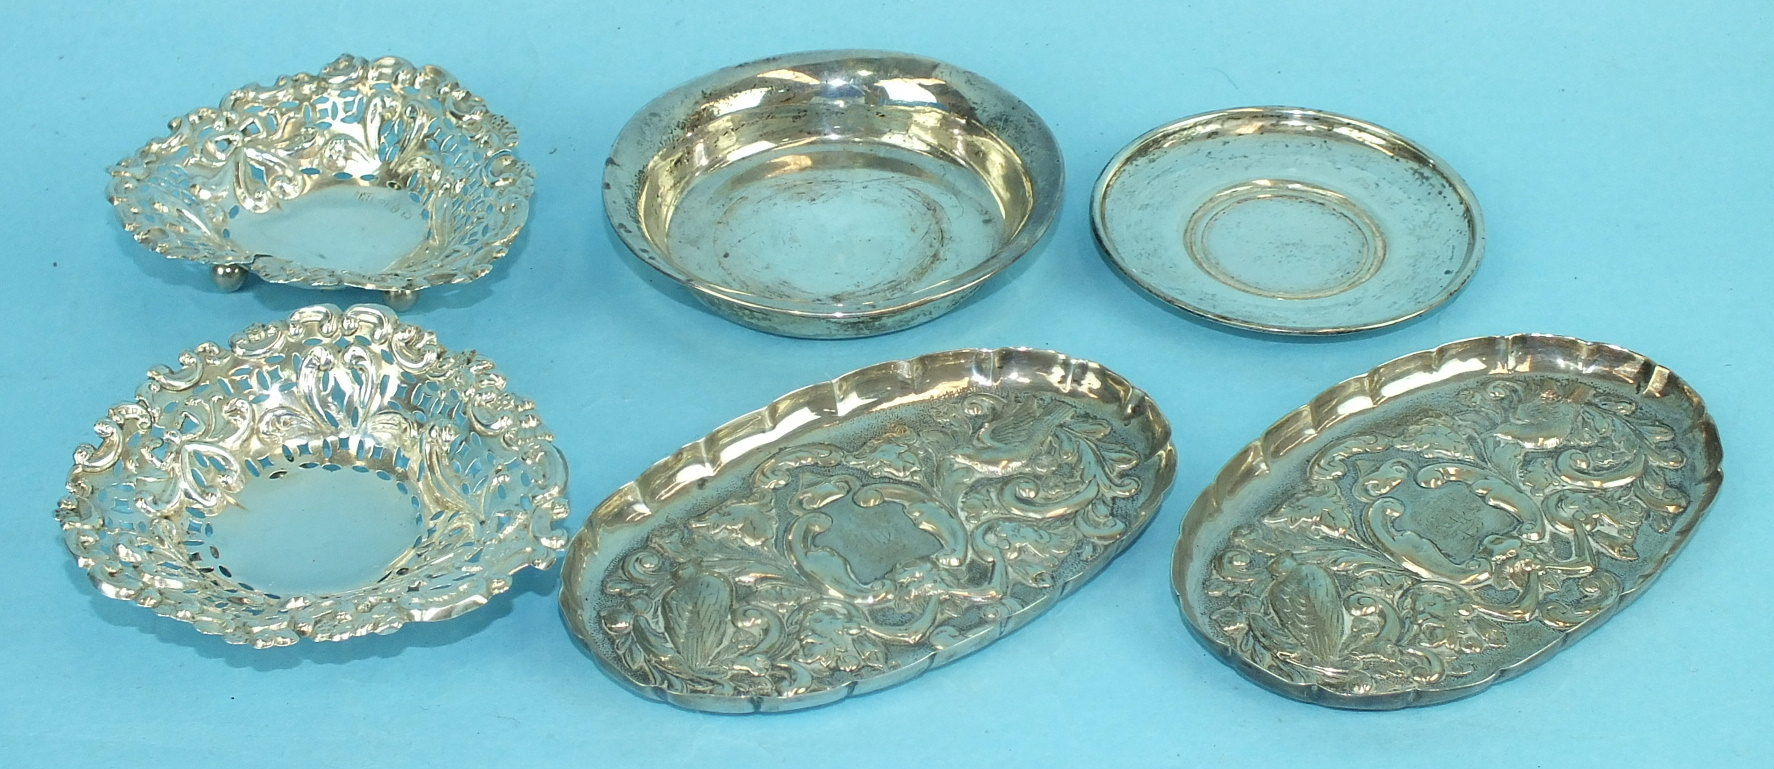 Lot 457 - A pair of Victorian oval embossed pin trays decorated with birds and foliage, London 1894 and